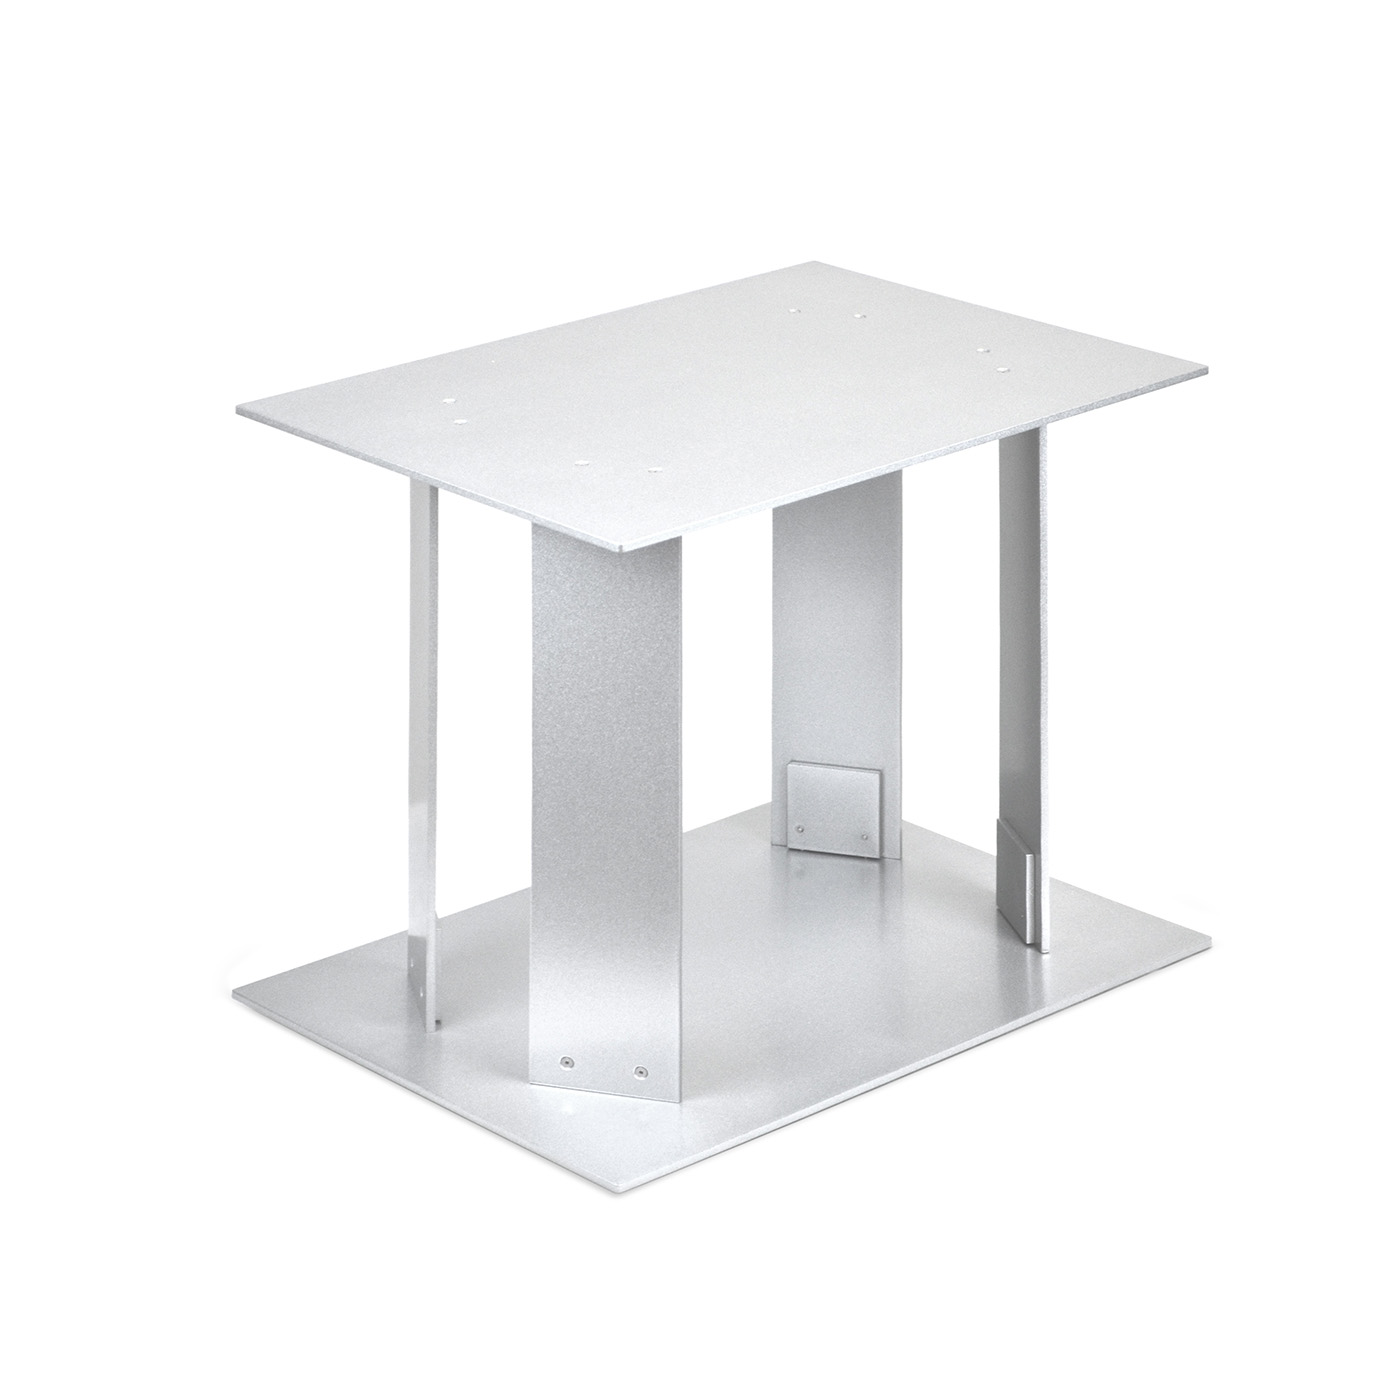 Urbann TC1 Coffee Table side